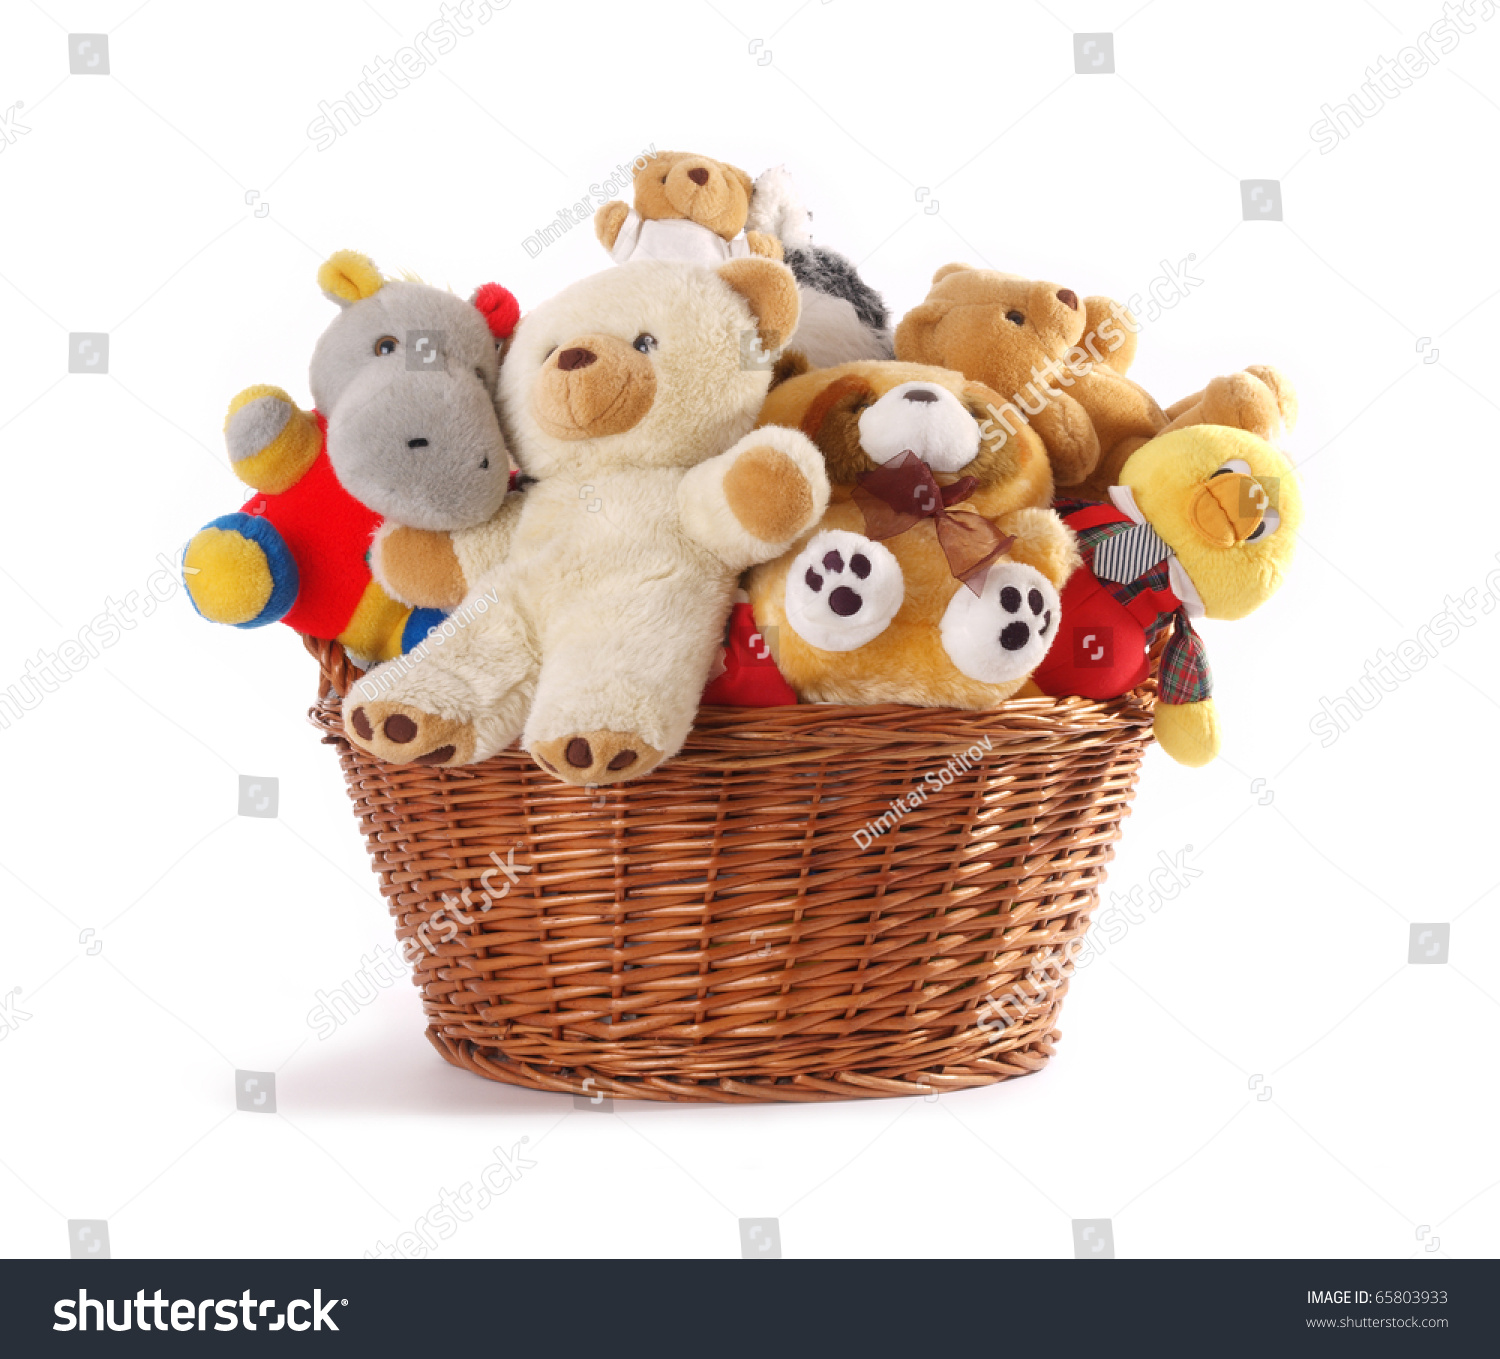 Soft Toys Clip Art : Stuffed animal toys basket isolated on stock photo